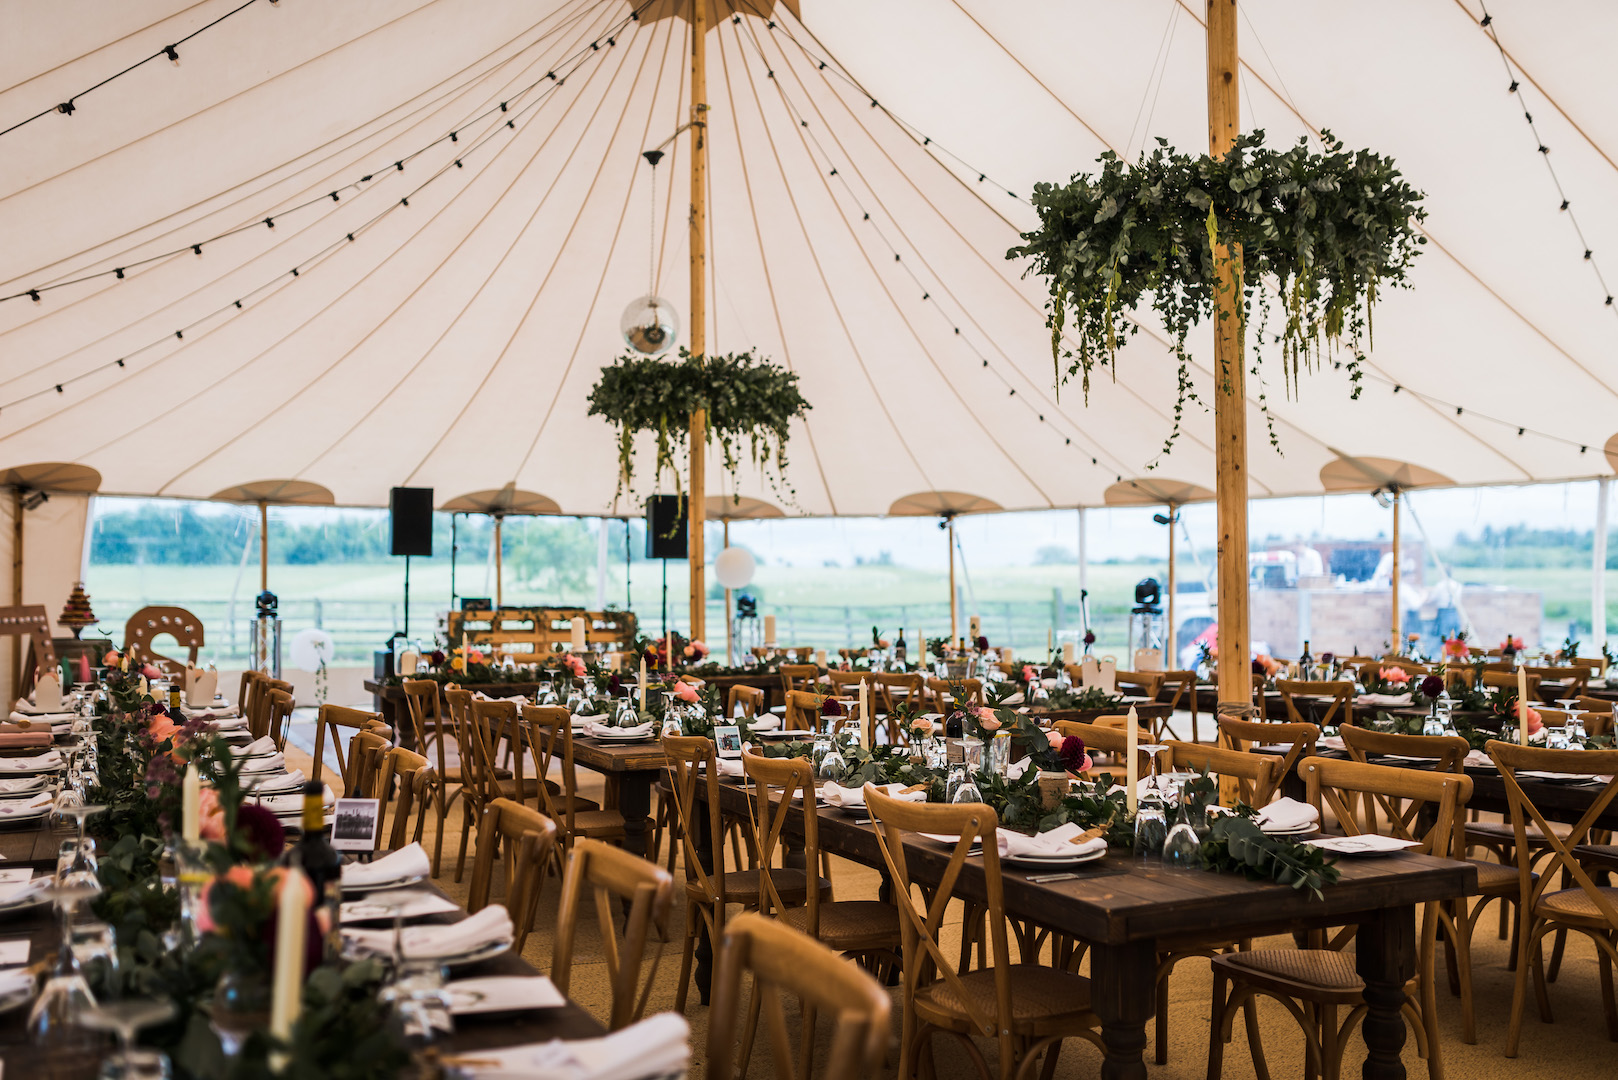 Sarah and Joe's PapaKata Sperry Wedding: Farmhouse Tables and Cross Back Chairs